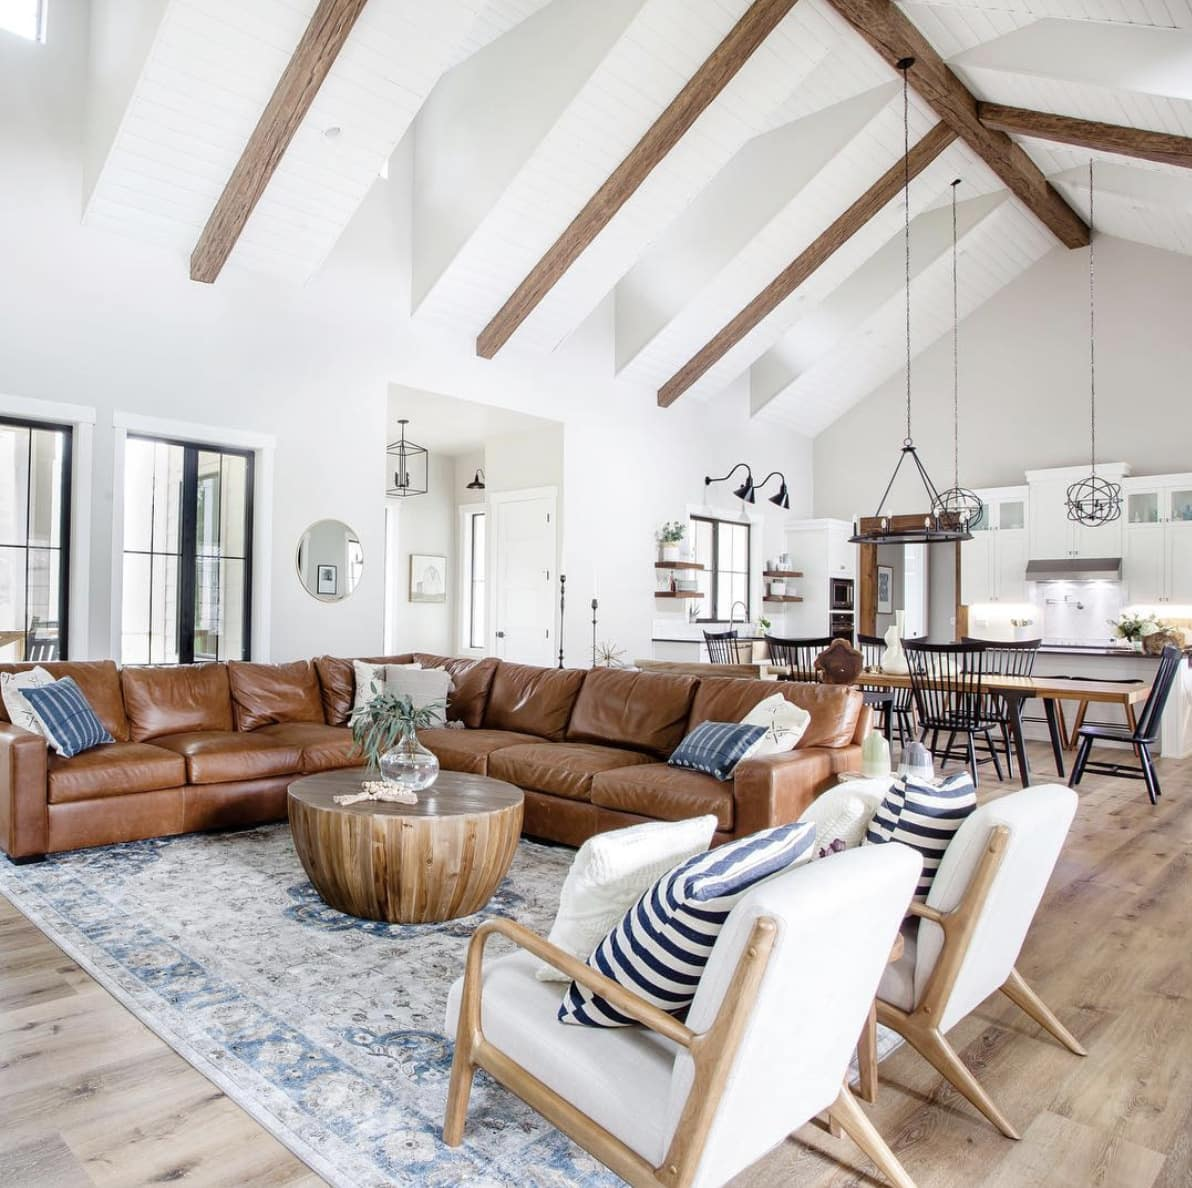 modern farmhouse-style great room with large living room rug placed under the sectional sofa and armchairs